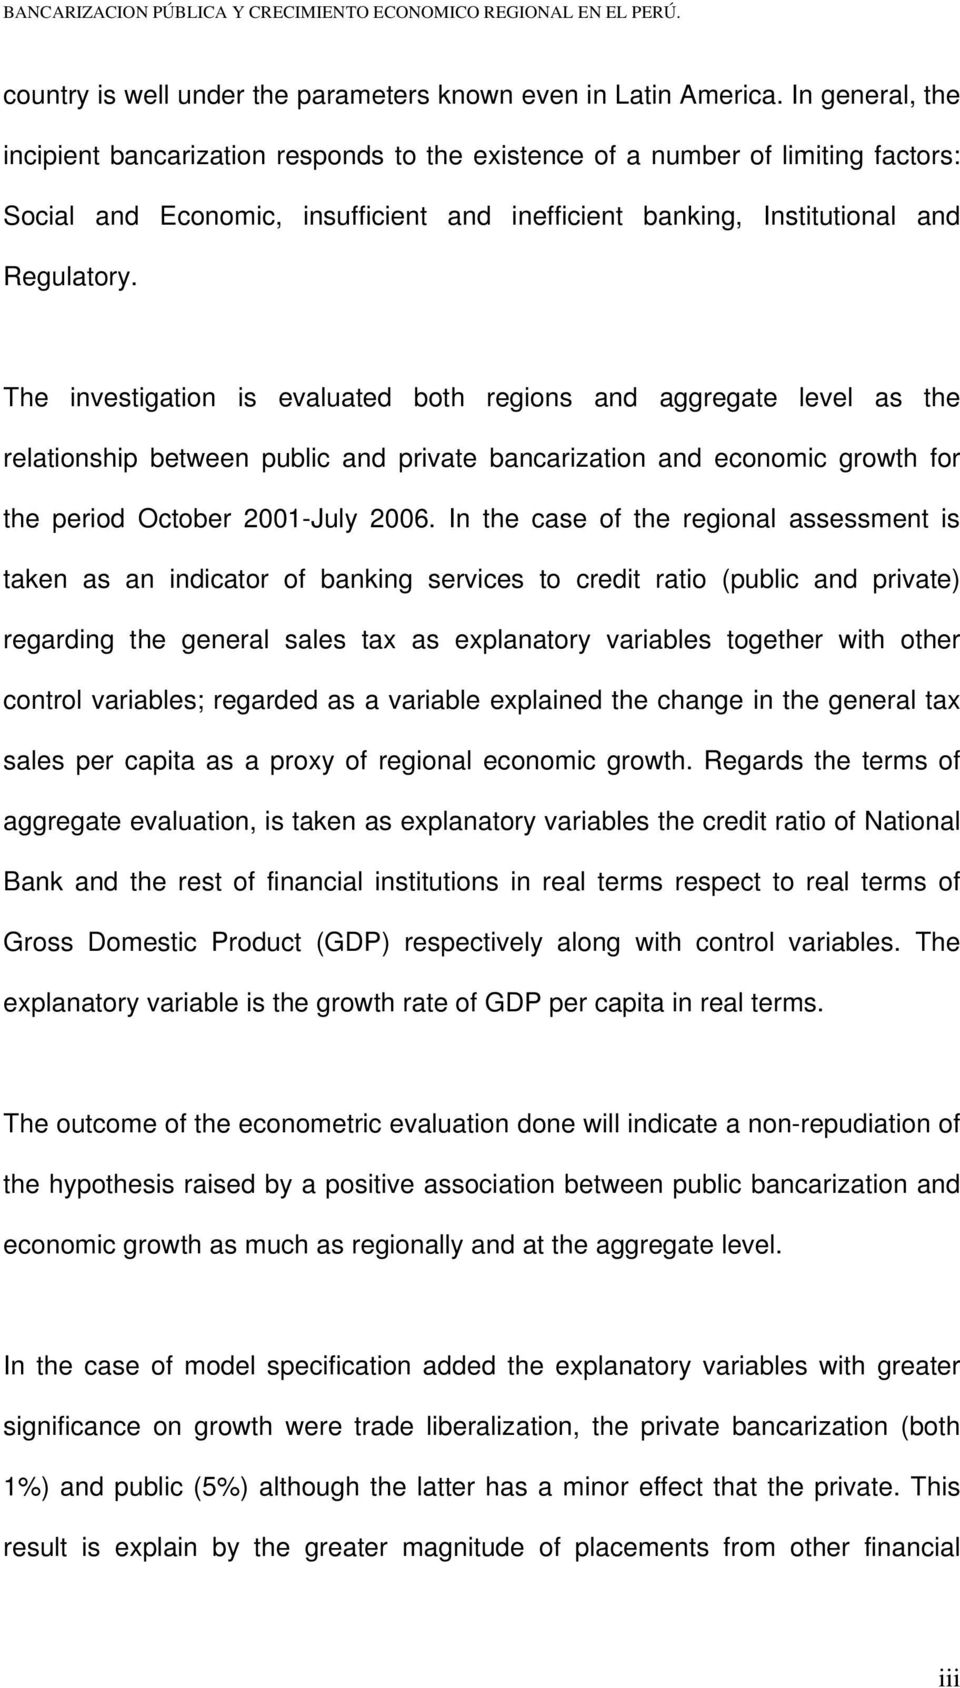 The investigation is evaluated both regions and aggregate level as the relationship between public and private bancarization and economic growth for the period October 2001-July 2006.